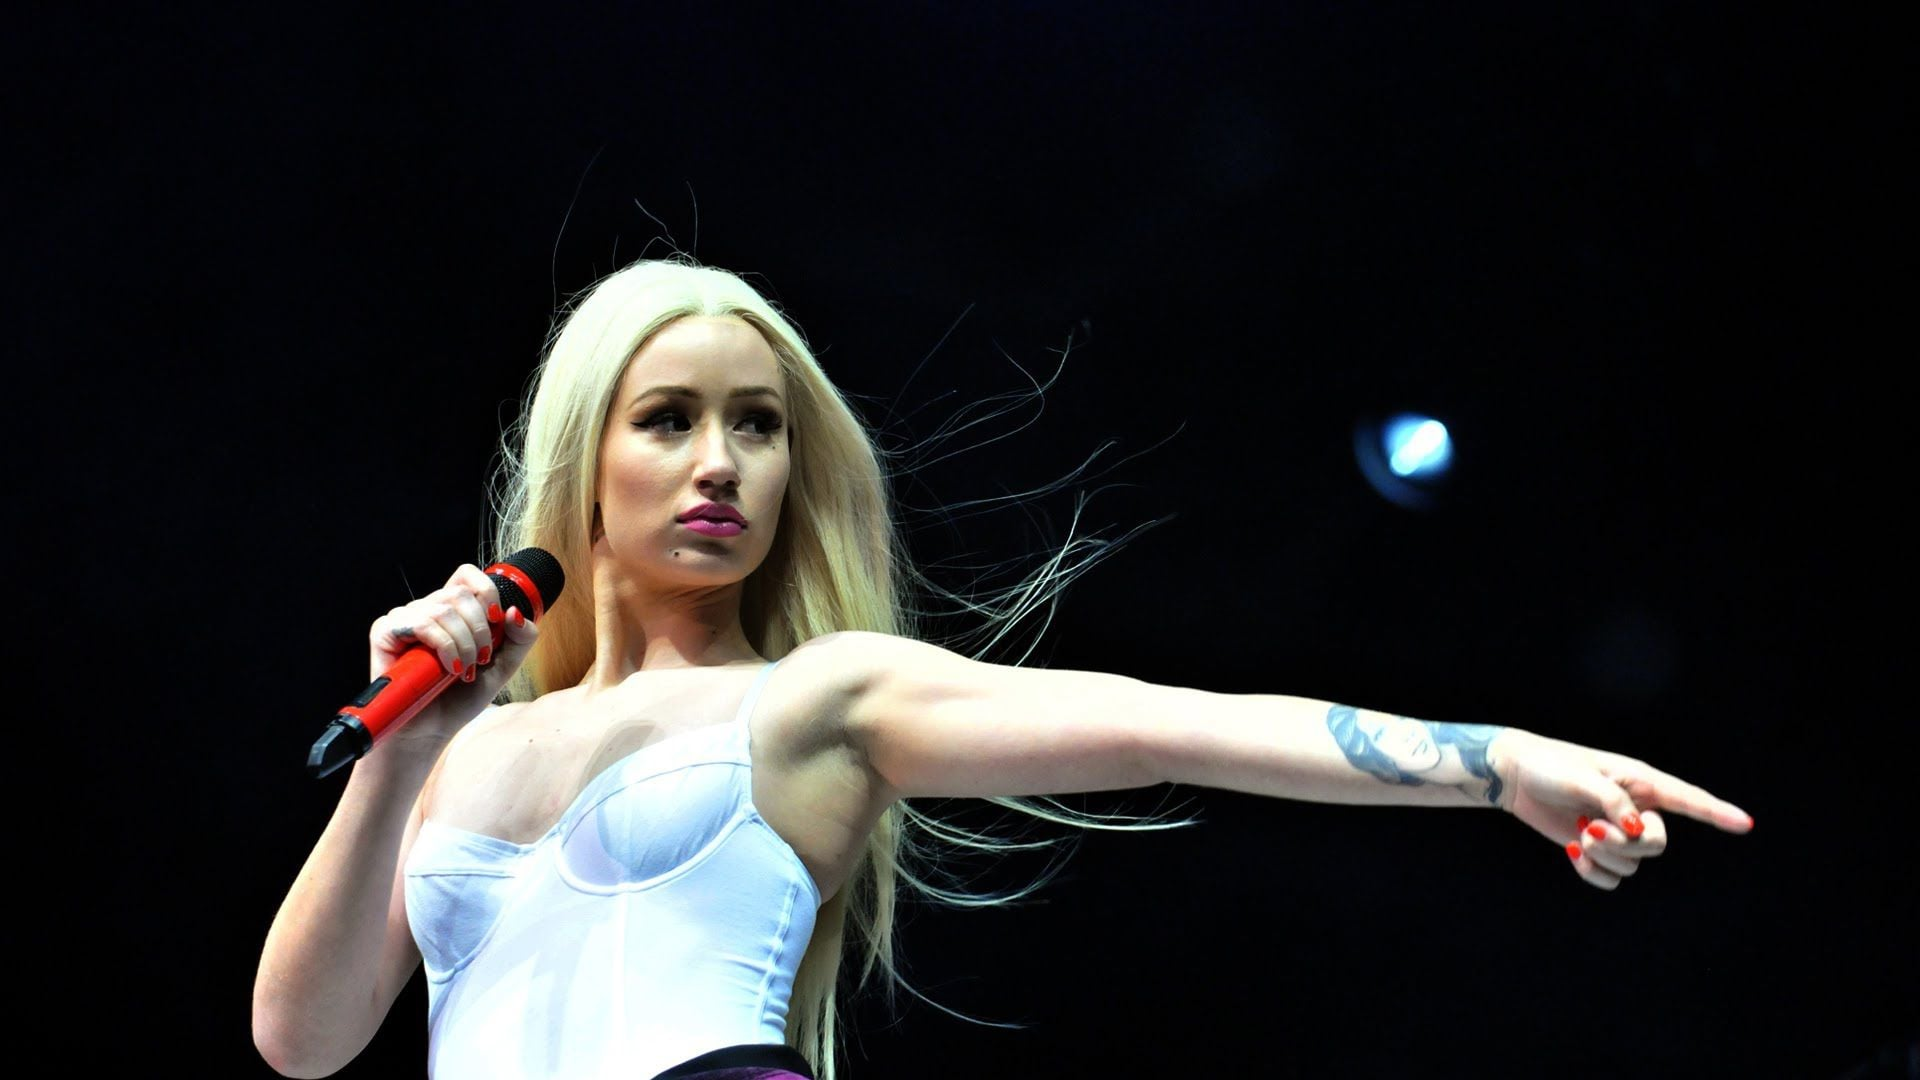 Iggy Azalea >> 20+ Iggy Azalea HD wallpapers free Download Amethyst ...